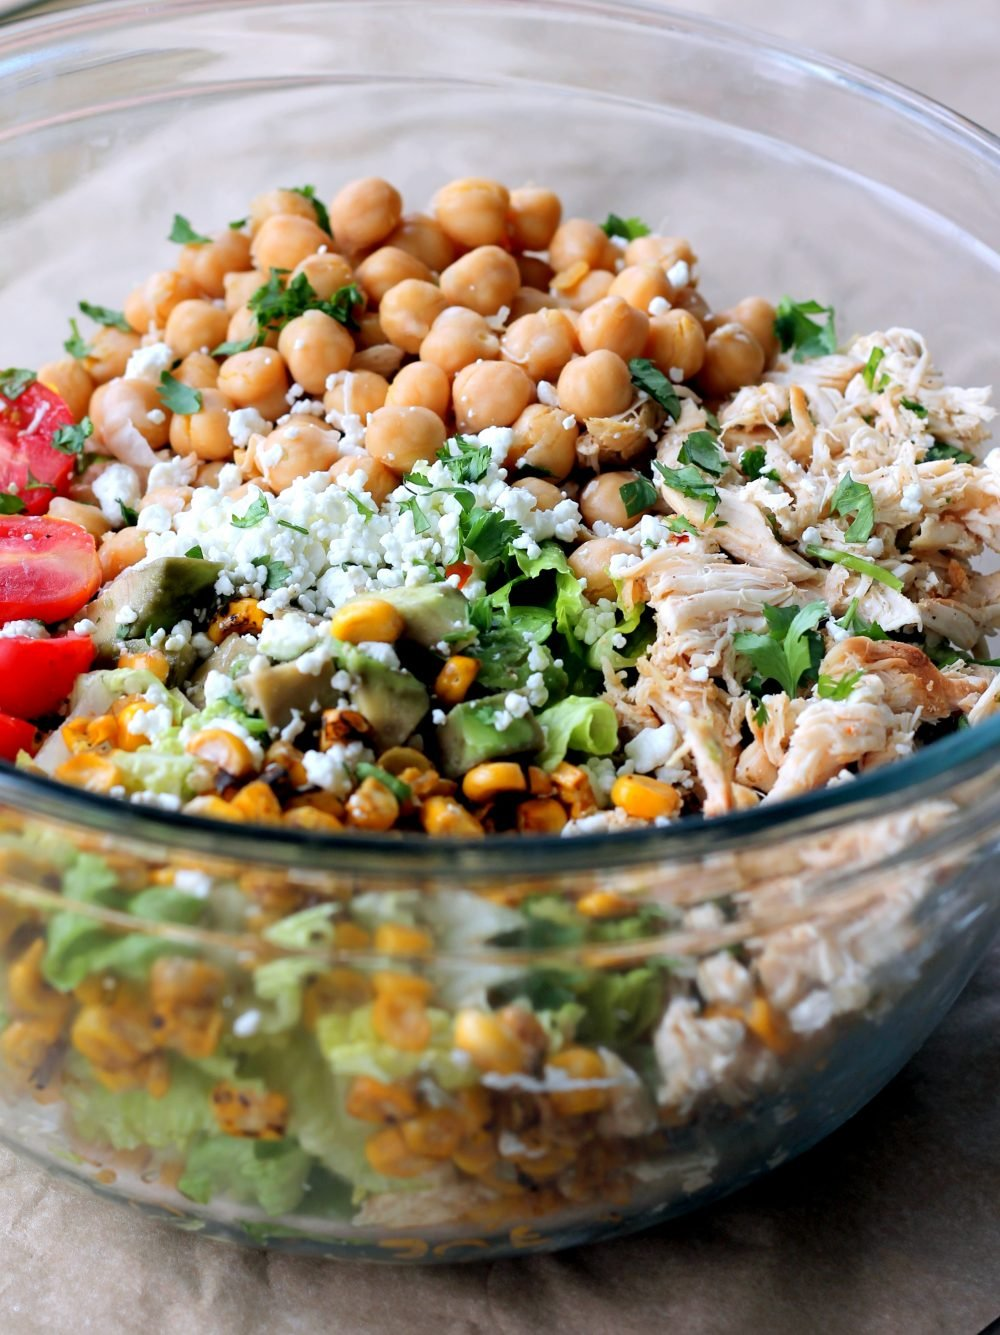 Easy healthy chicken chickpea chopped salad loaded with protein and fresh ingredients like grilled corn, grape tomatoes, crunchy romaine, creamy avocado, and your favorite dressing.